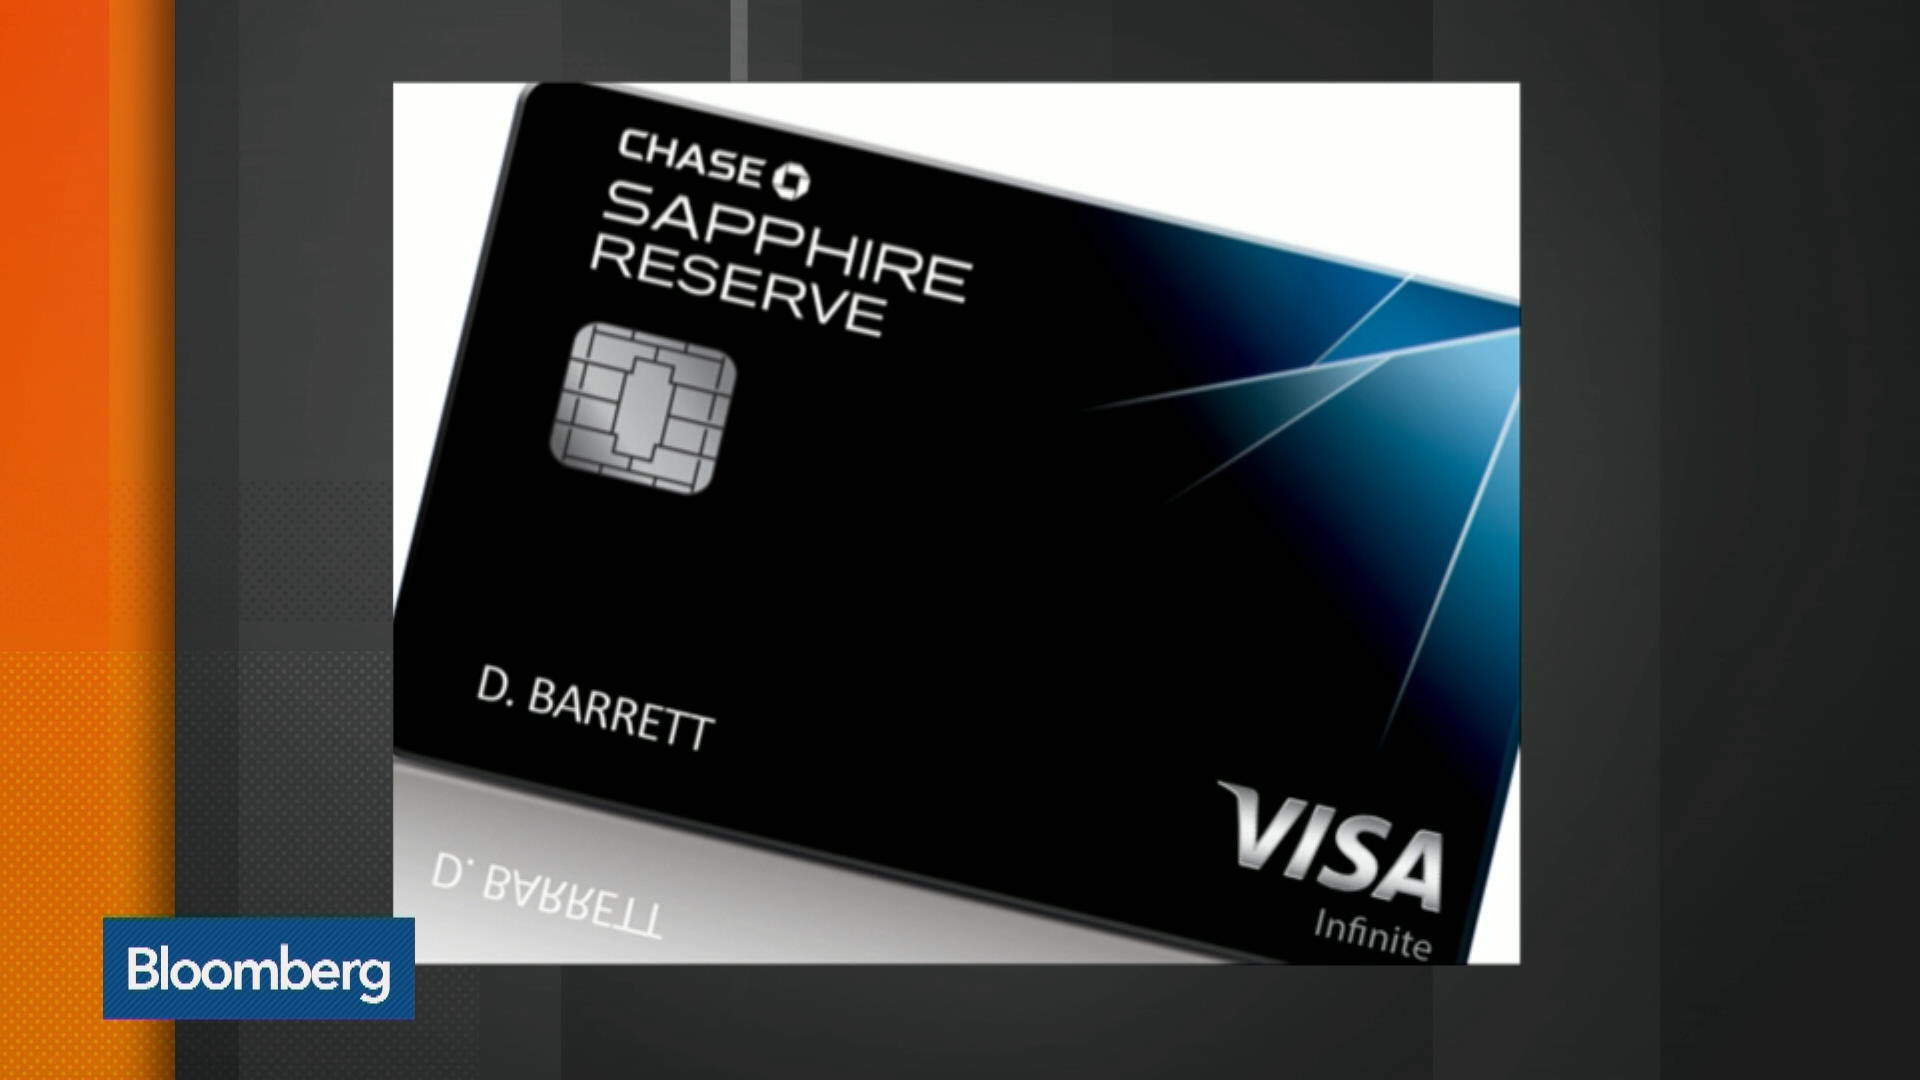 the cult of the chase sapphire credit card – bloomberg